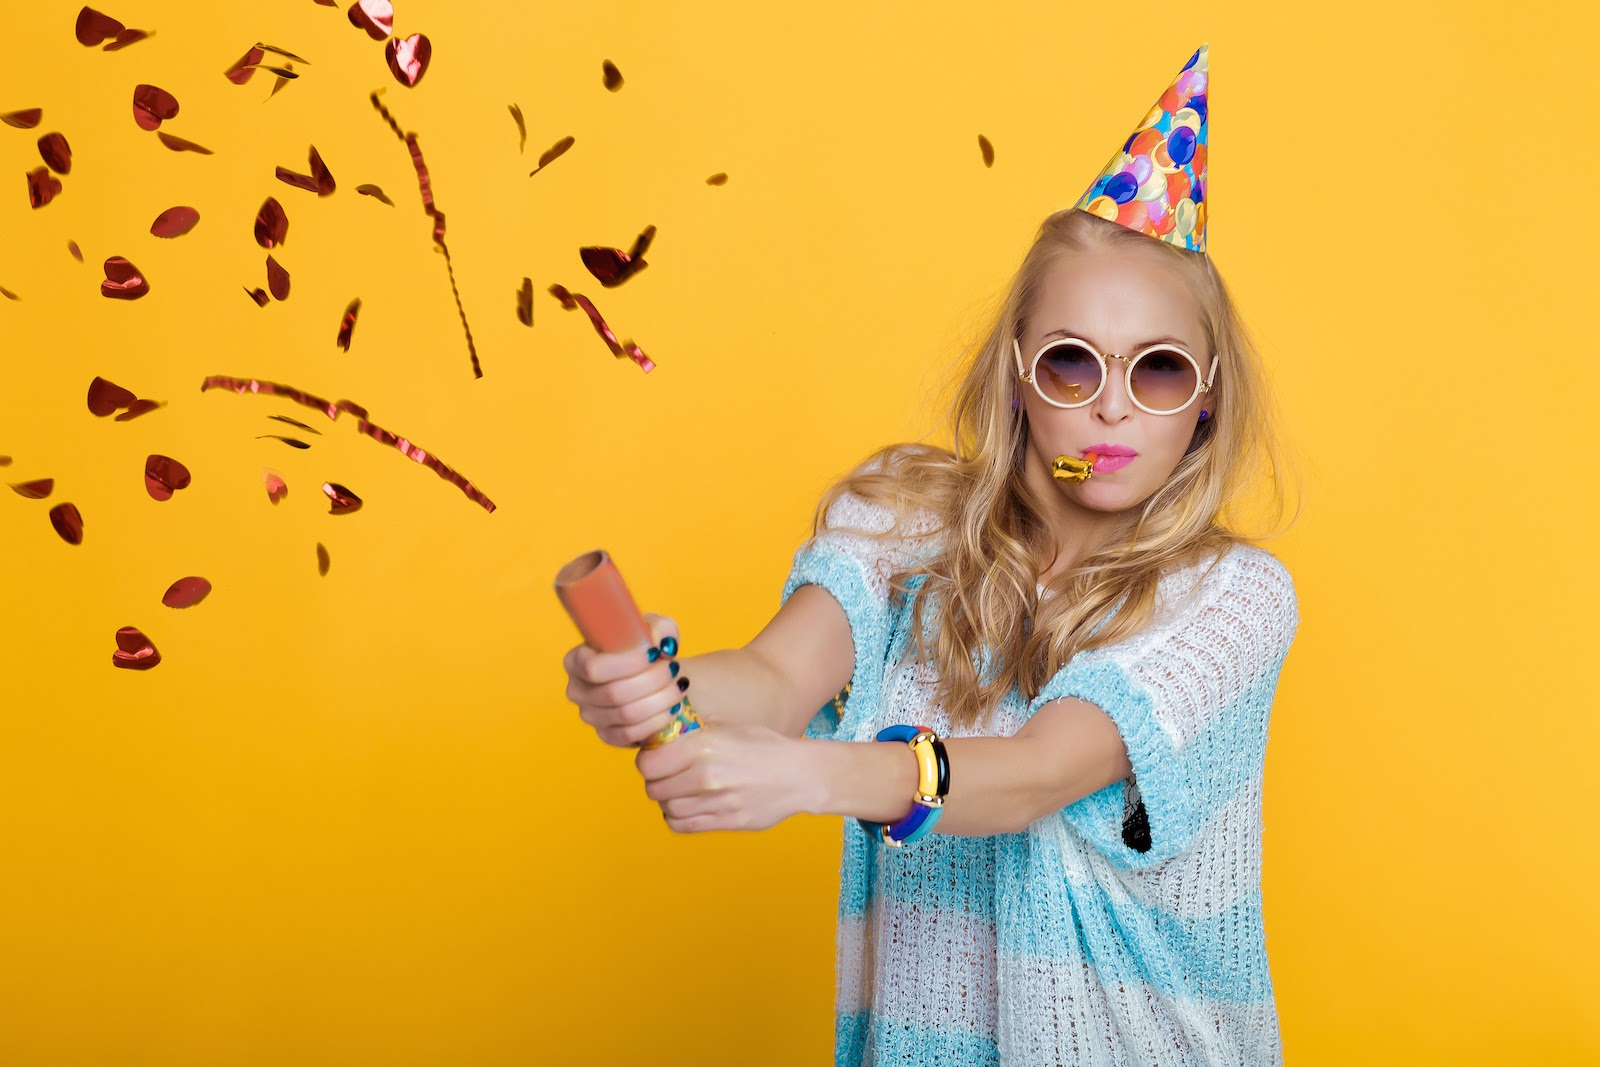 A woman wears a party hat and pops a confetti can as part of the audience engagement at a virtual party